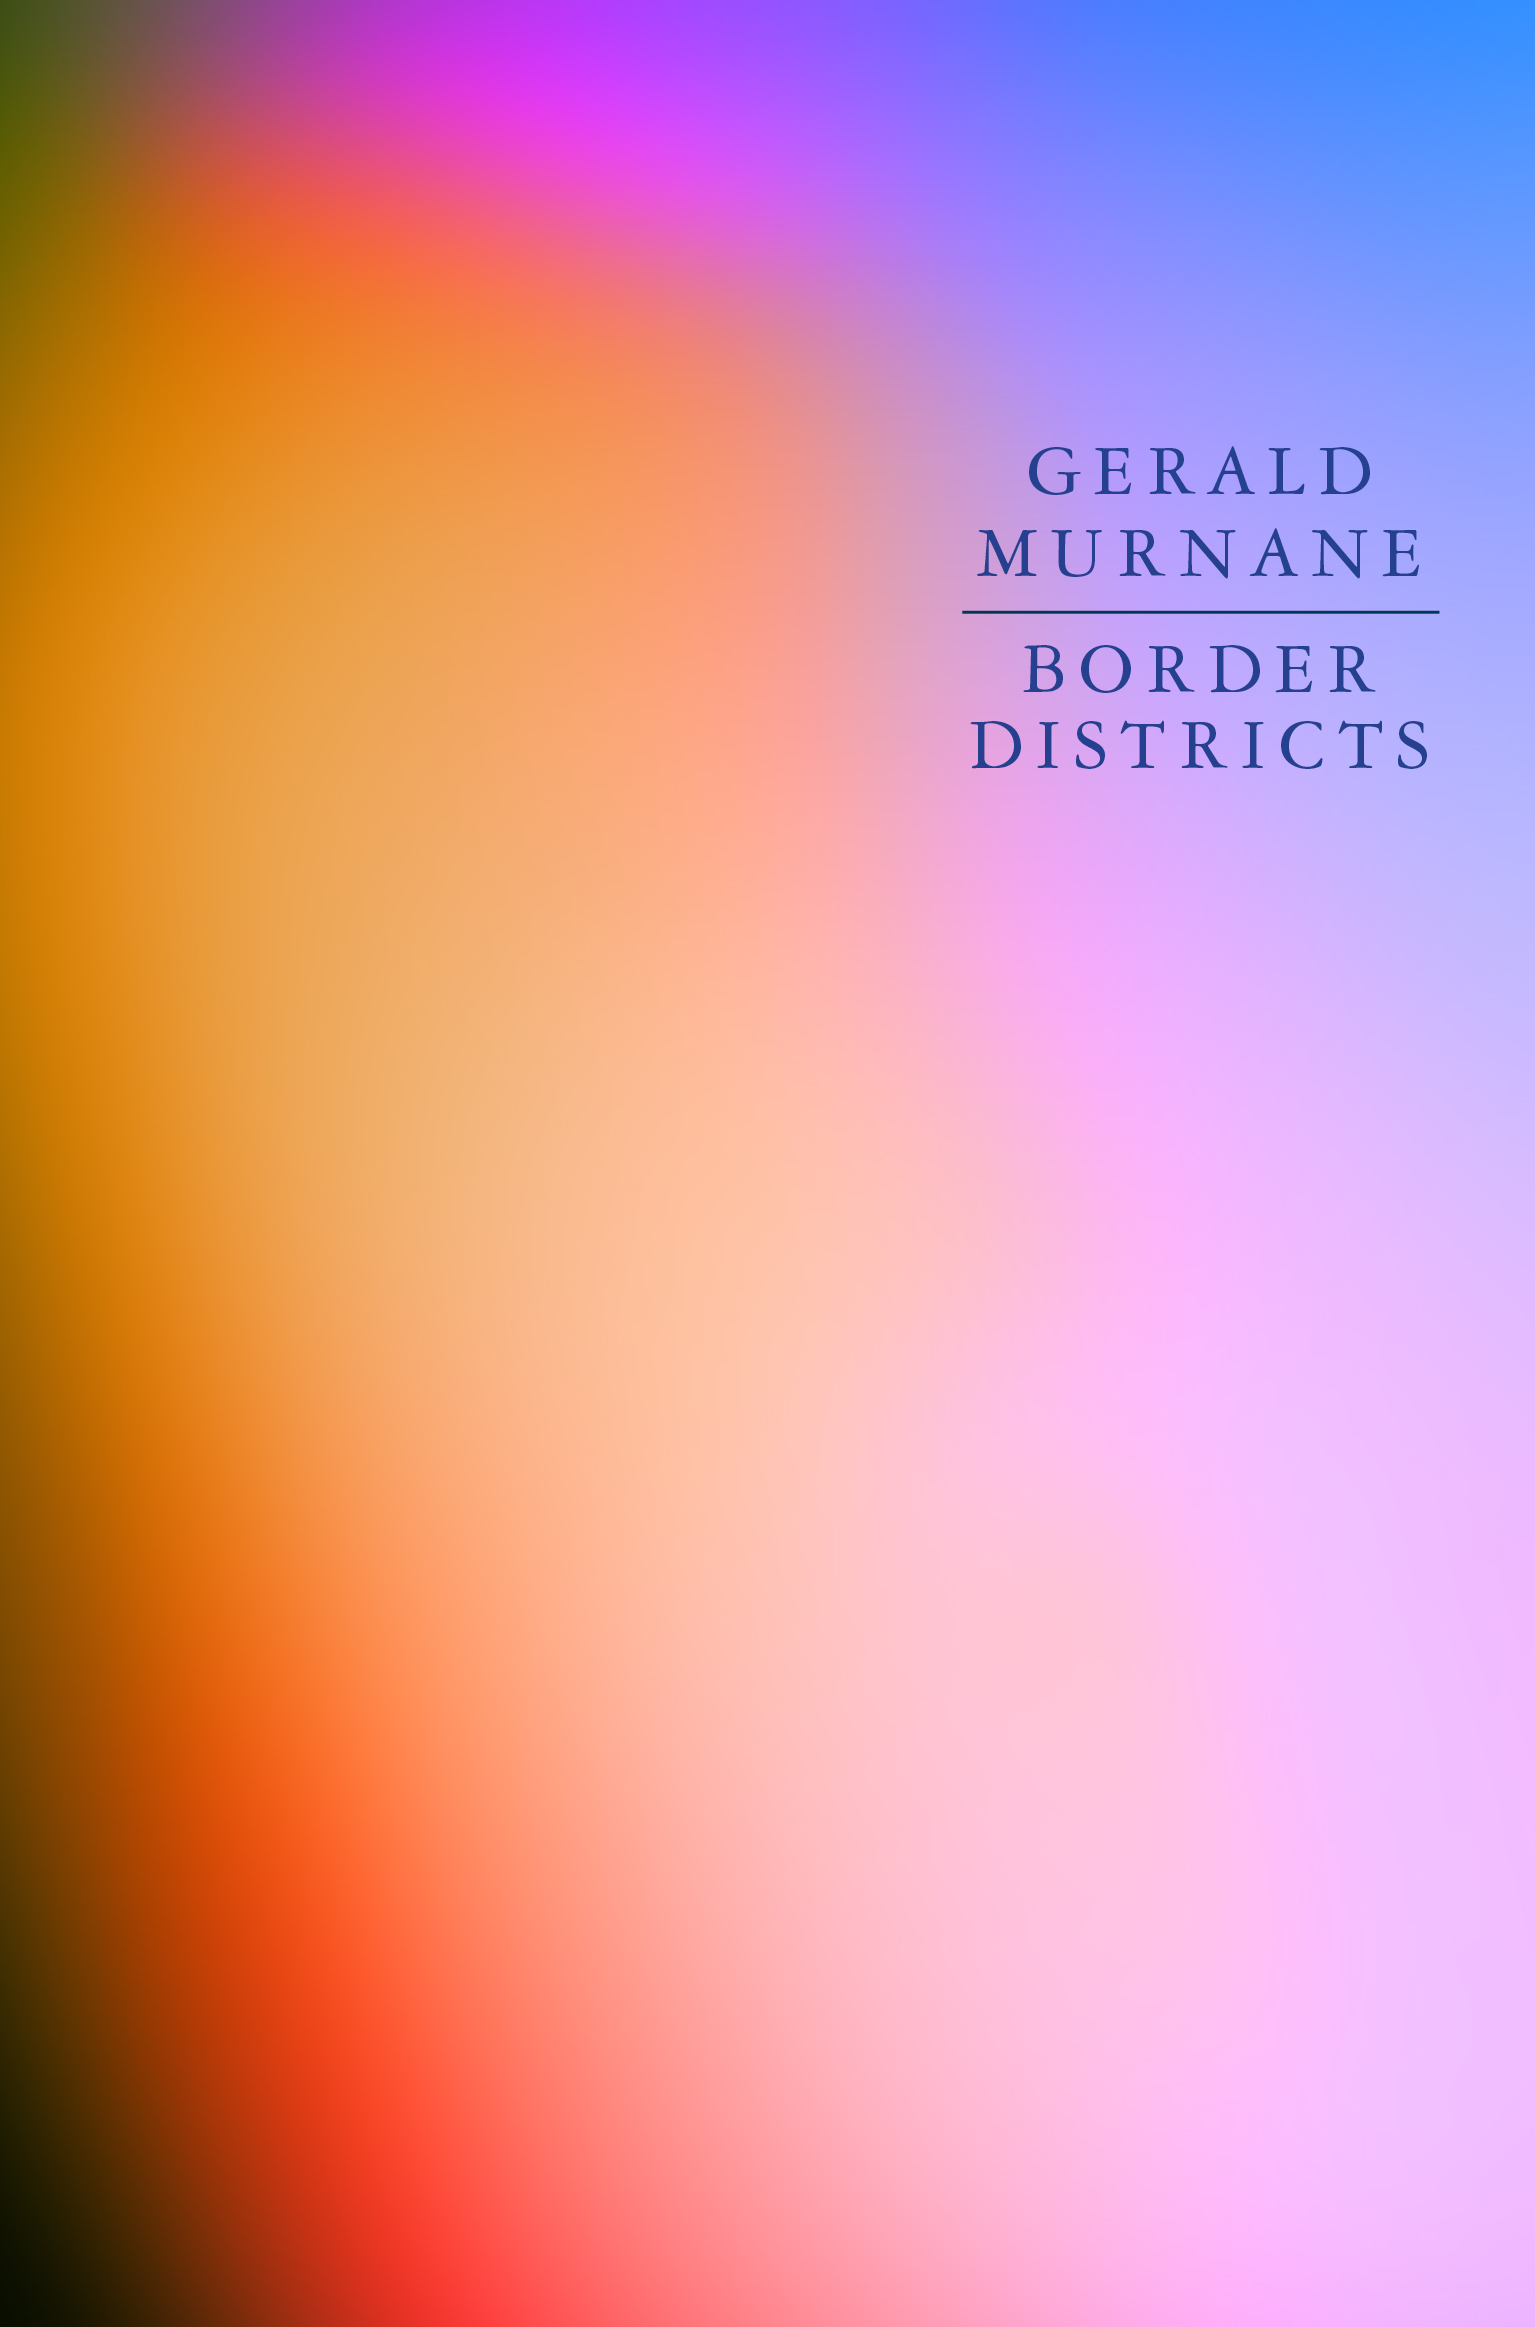 a new work by a master of contemporary australian fiction highly regarded overseas but little known here giramondos publication of border districts